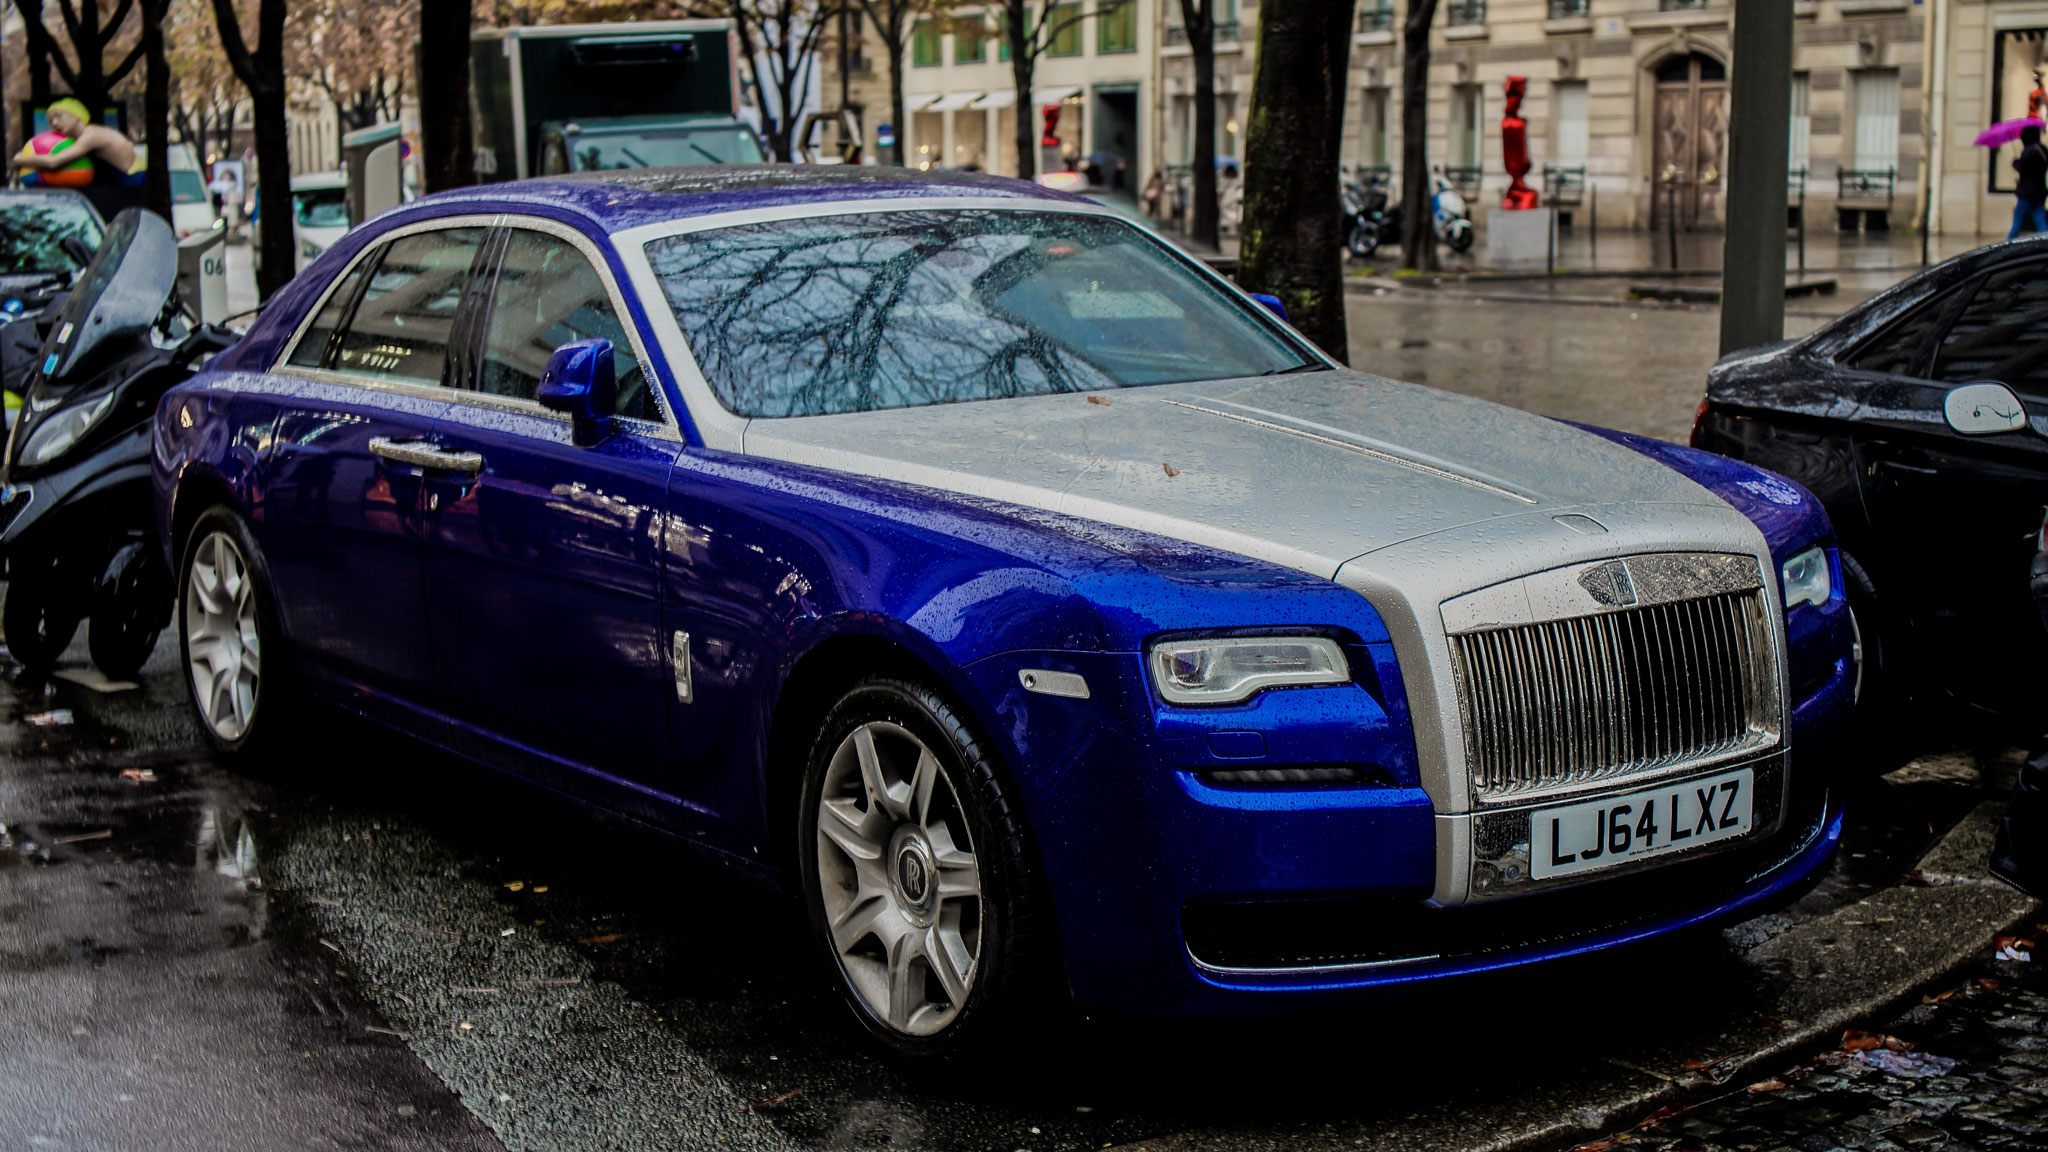 Rolls Royce Ghost Series II - LJ64-LXZ (GB)